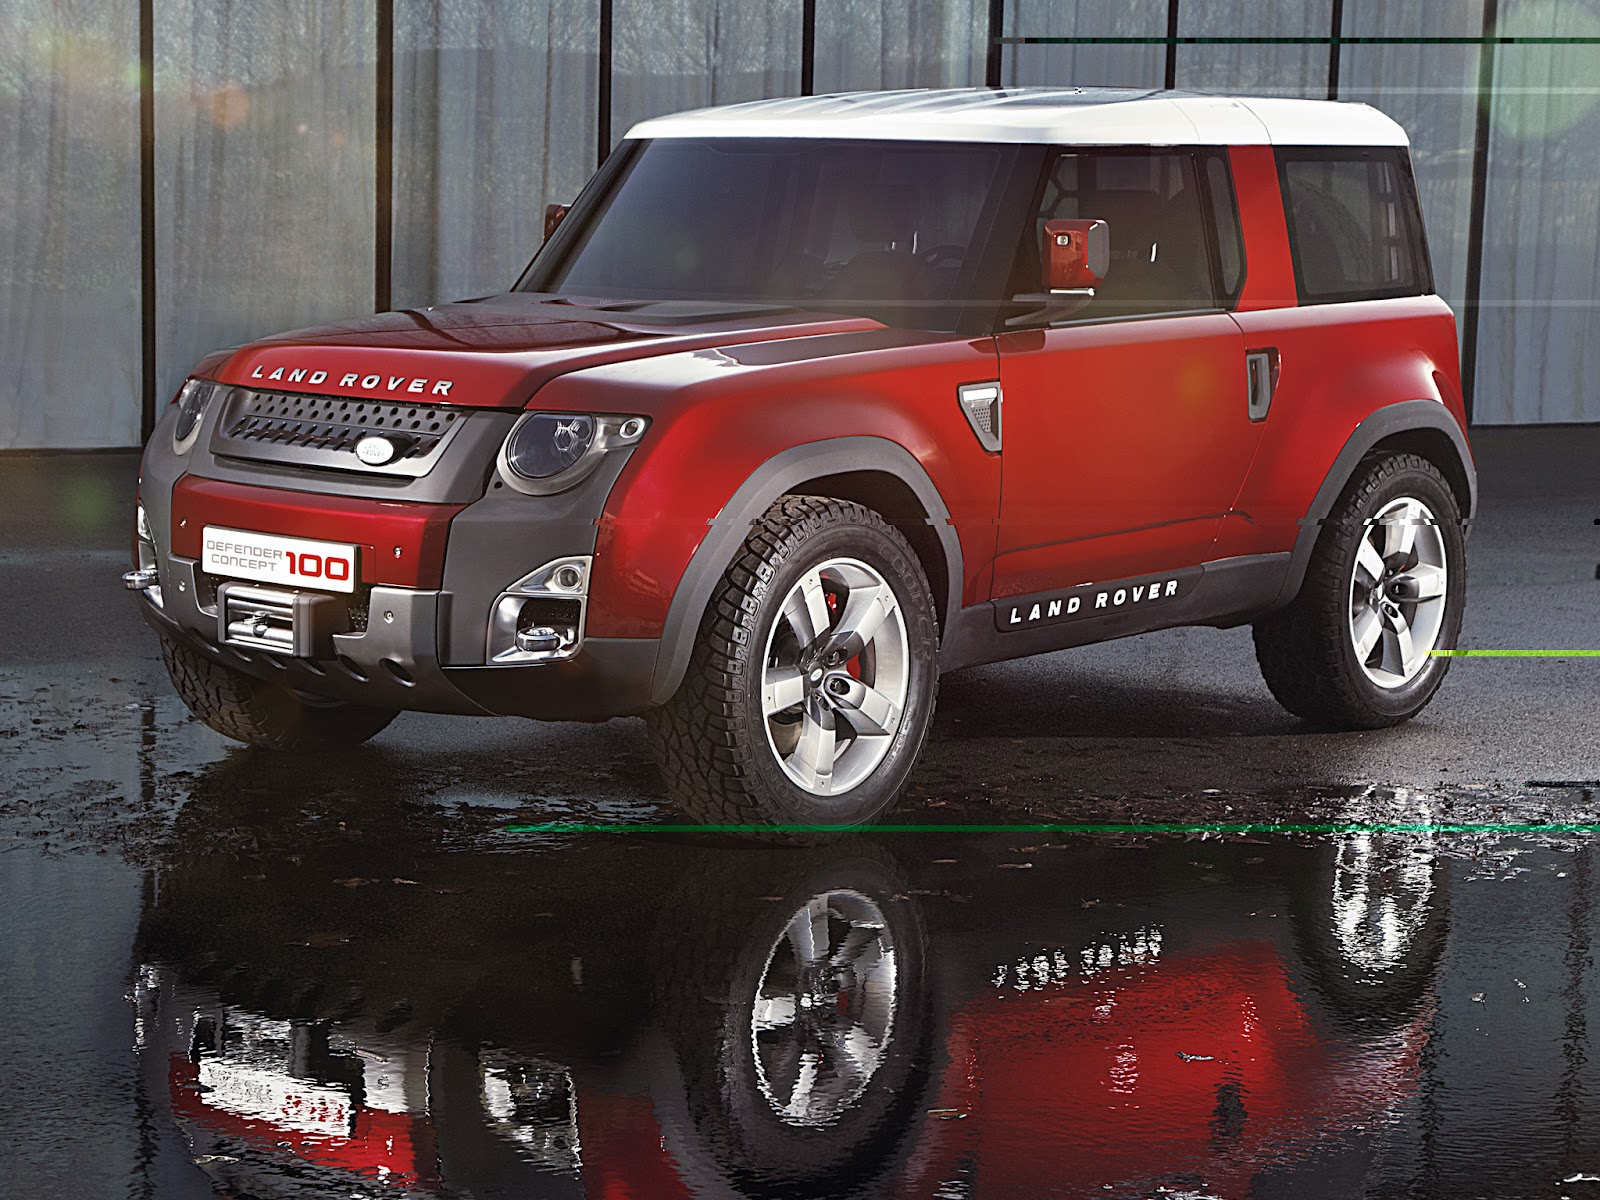 amazing red land rover 2012 amazing cars for you. Black Bedroom Furniture Sets. Home Design Ideas